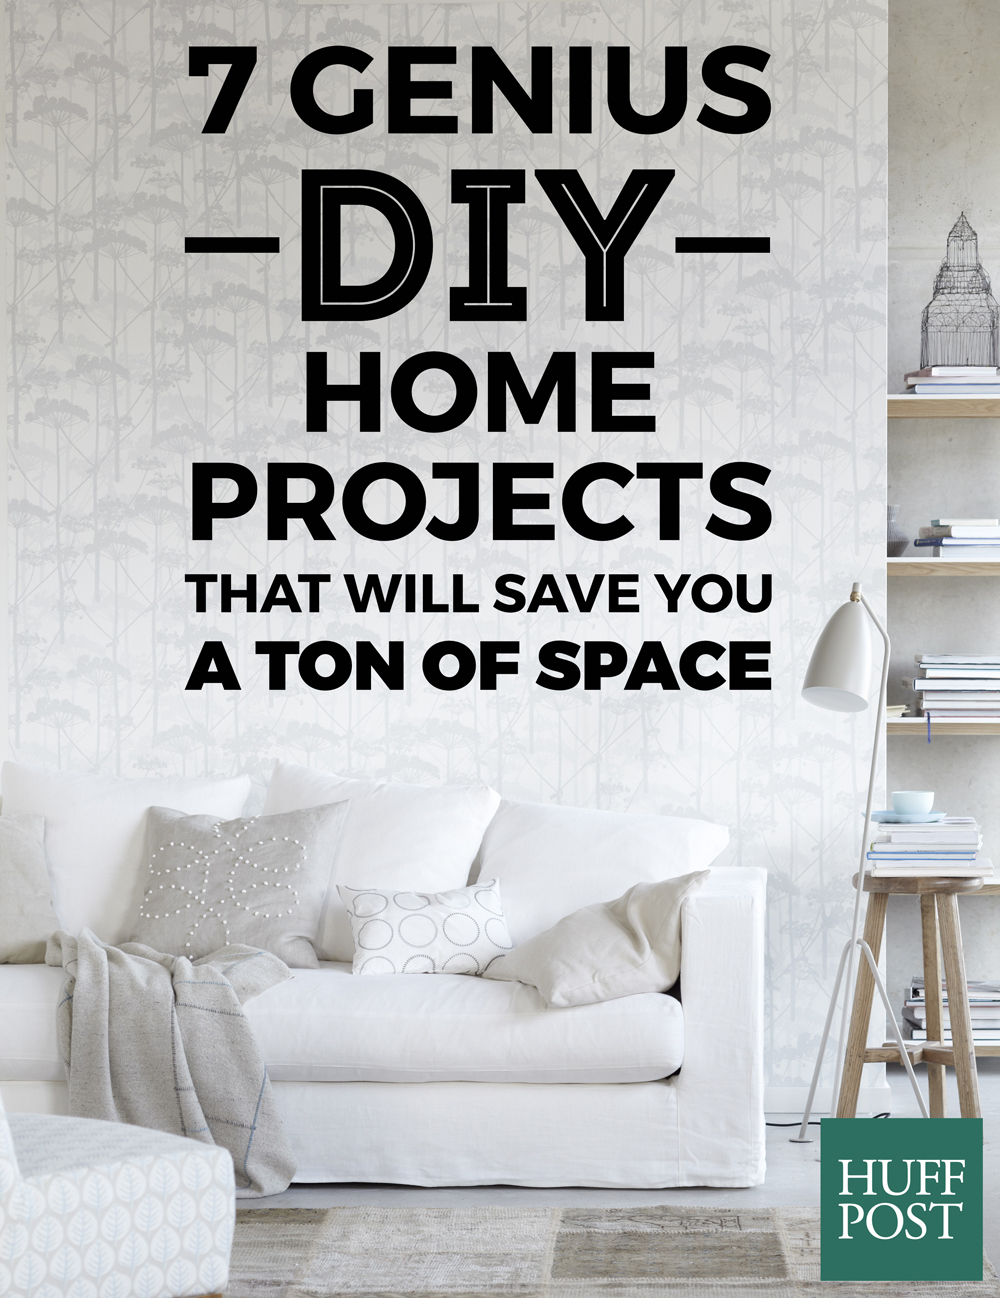 7 Genius DIY Home Projects That Will Save You A Ton Of Space | HuffPost